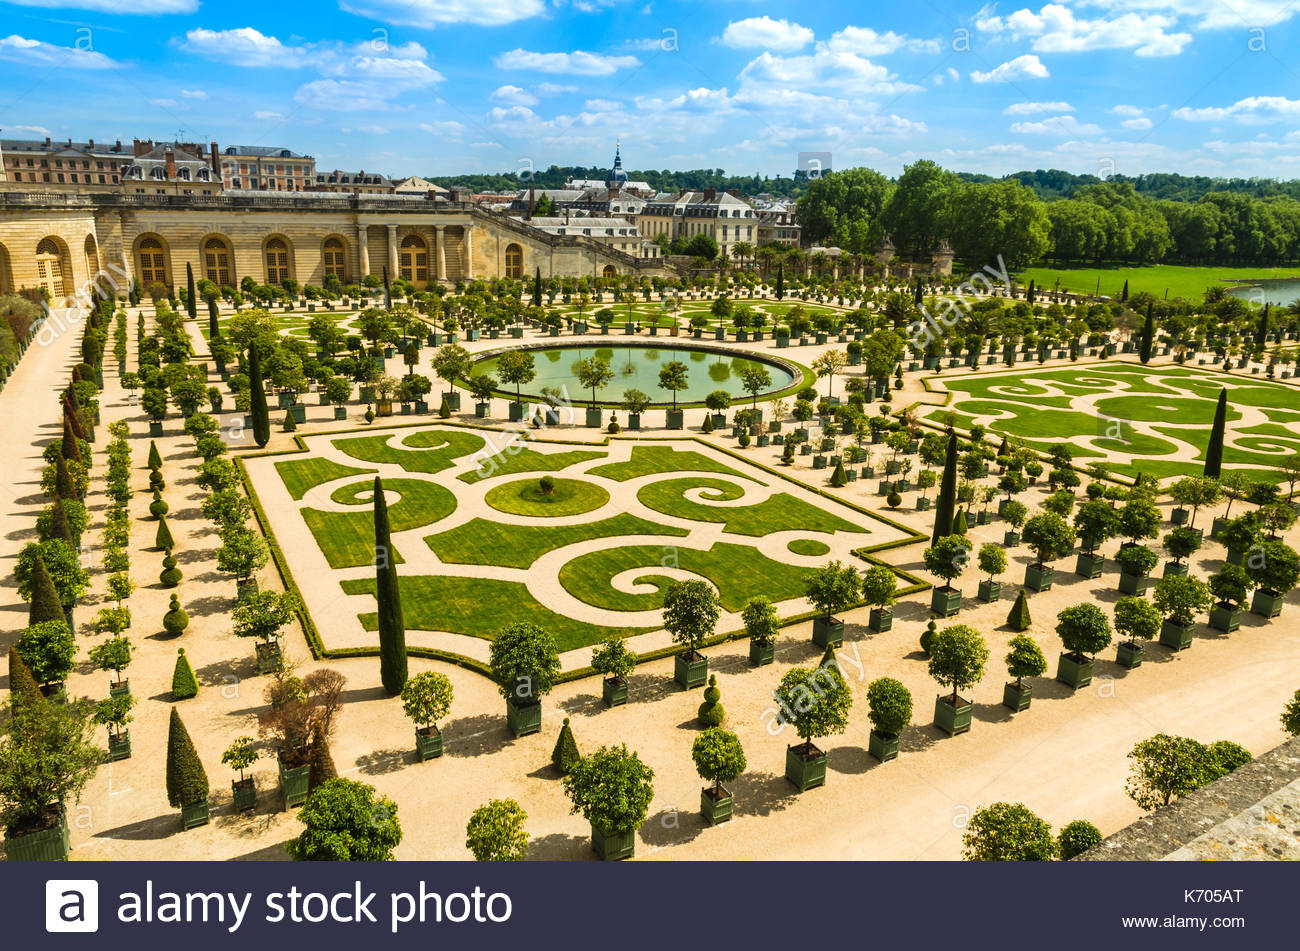 versailles france gardens of the versailles palace near paris france K705AT